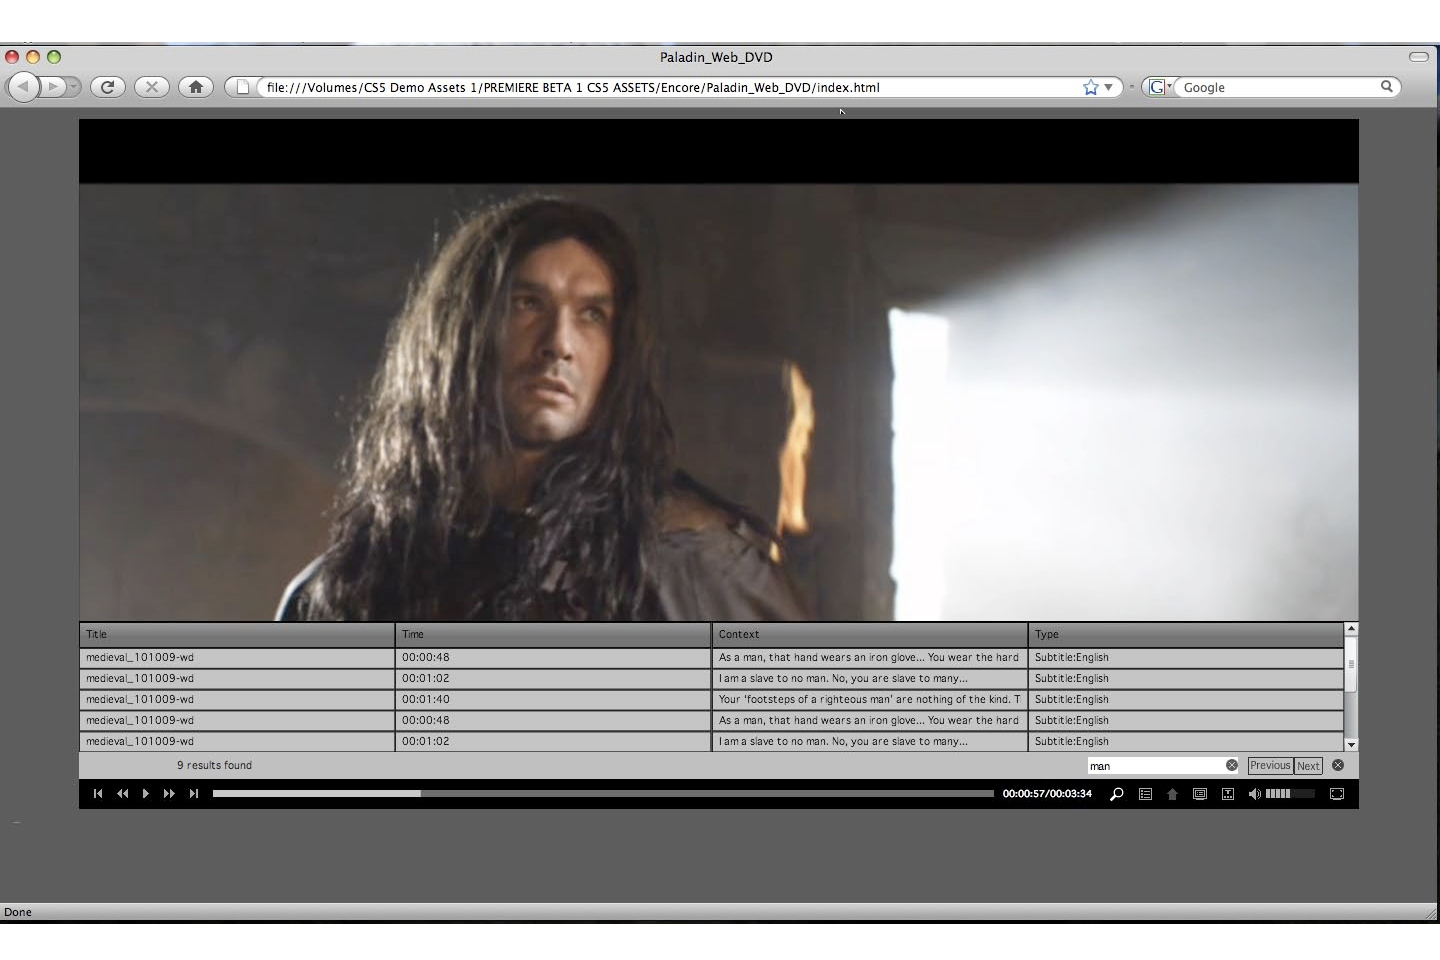 Adobe Systems Premiere Pro CS5 Review: Adobe's updated